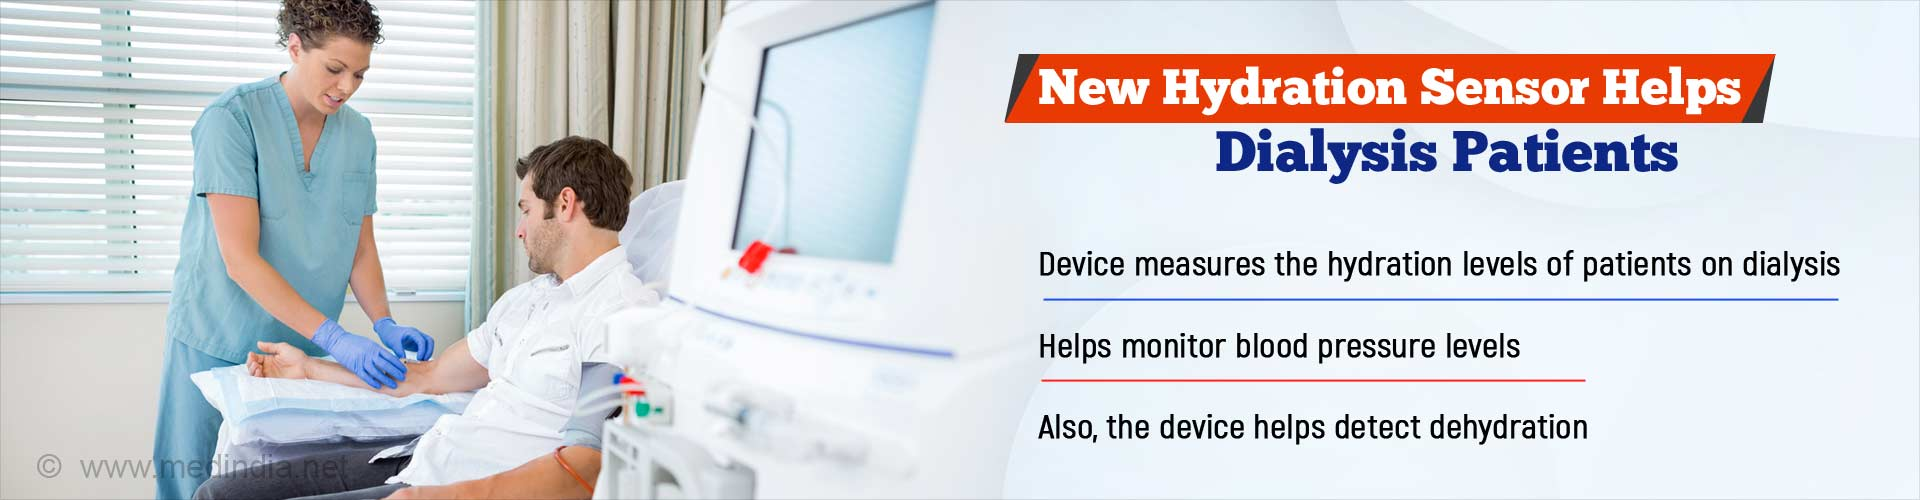 New Hydration Sensor Device Improves Dialysis Outcomes